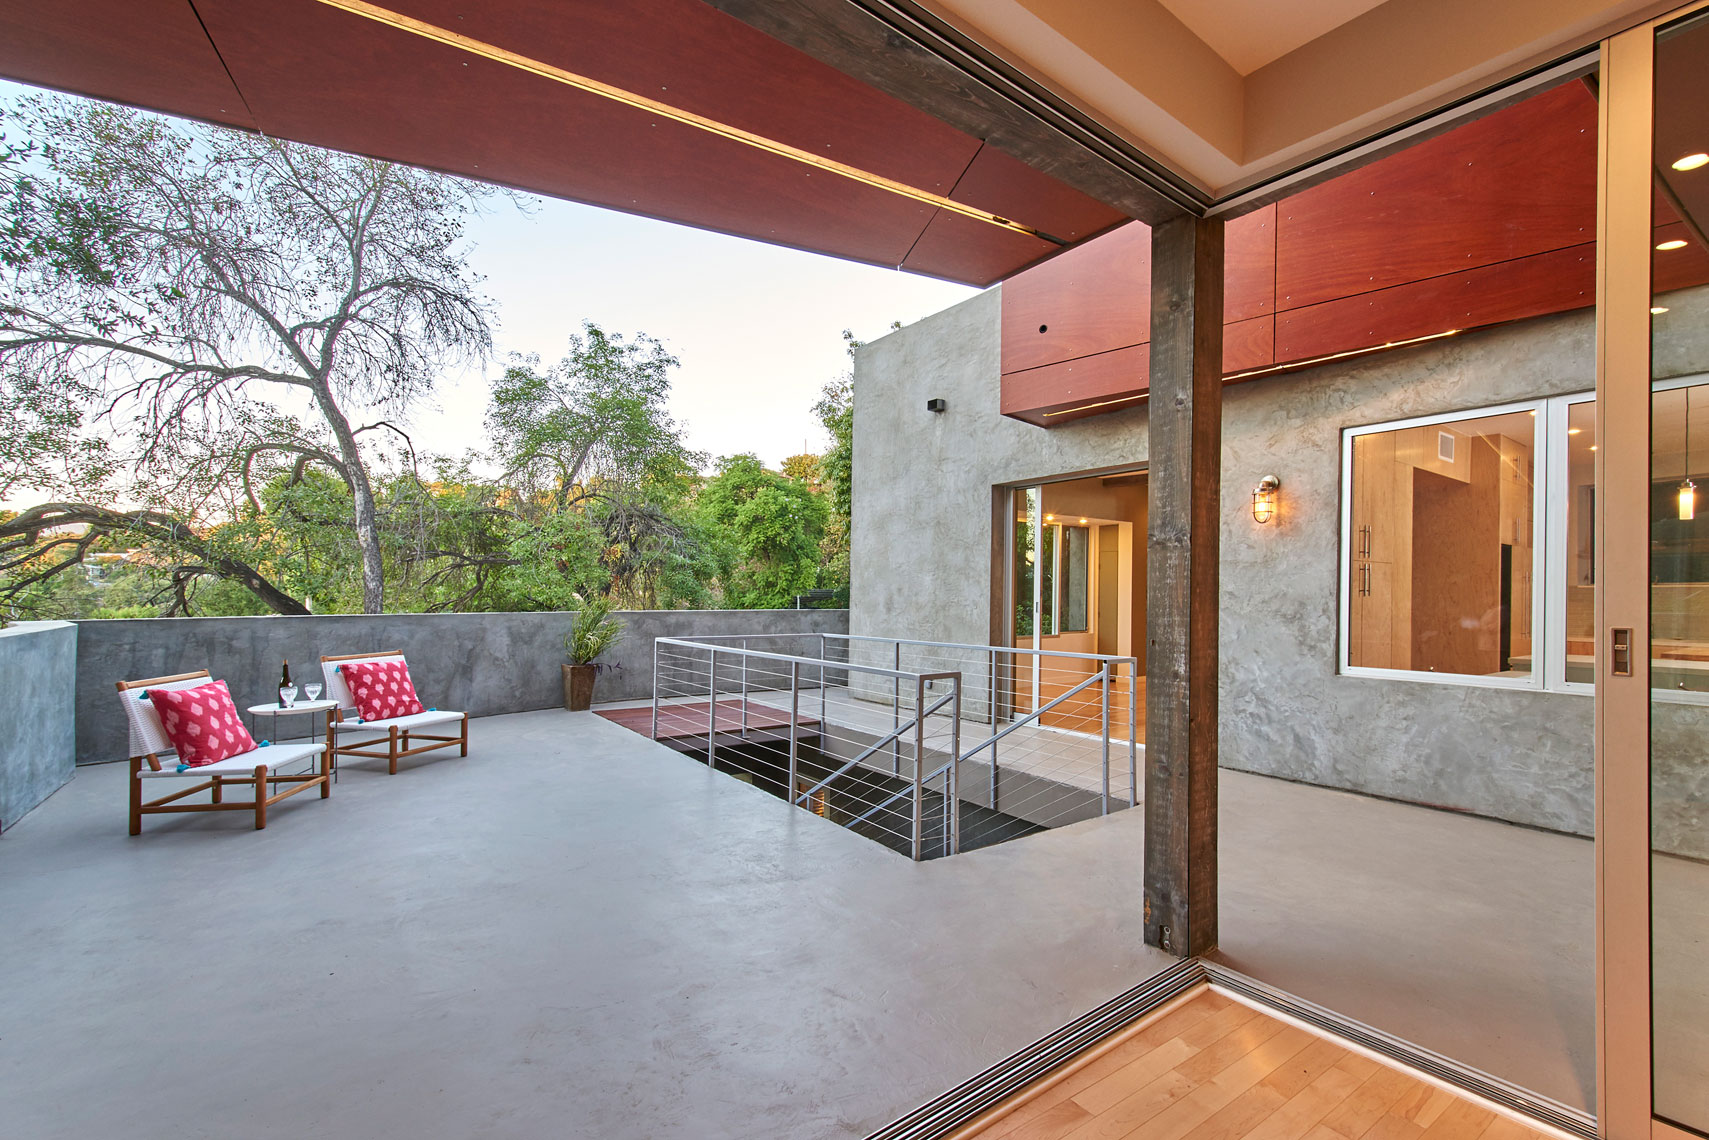 View-of-courtyard-from-living-room-through-sliding-glass-door-opening-in-contemporary-home-by-Los-Angeles-architecture photographer